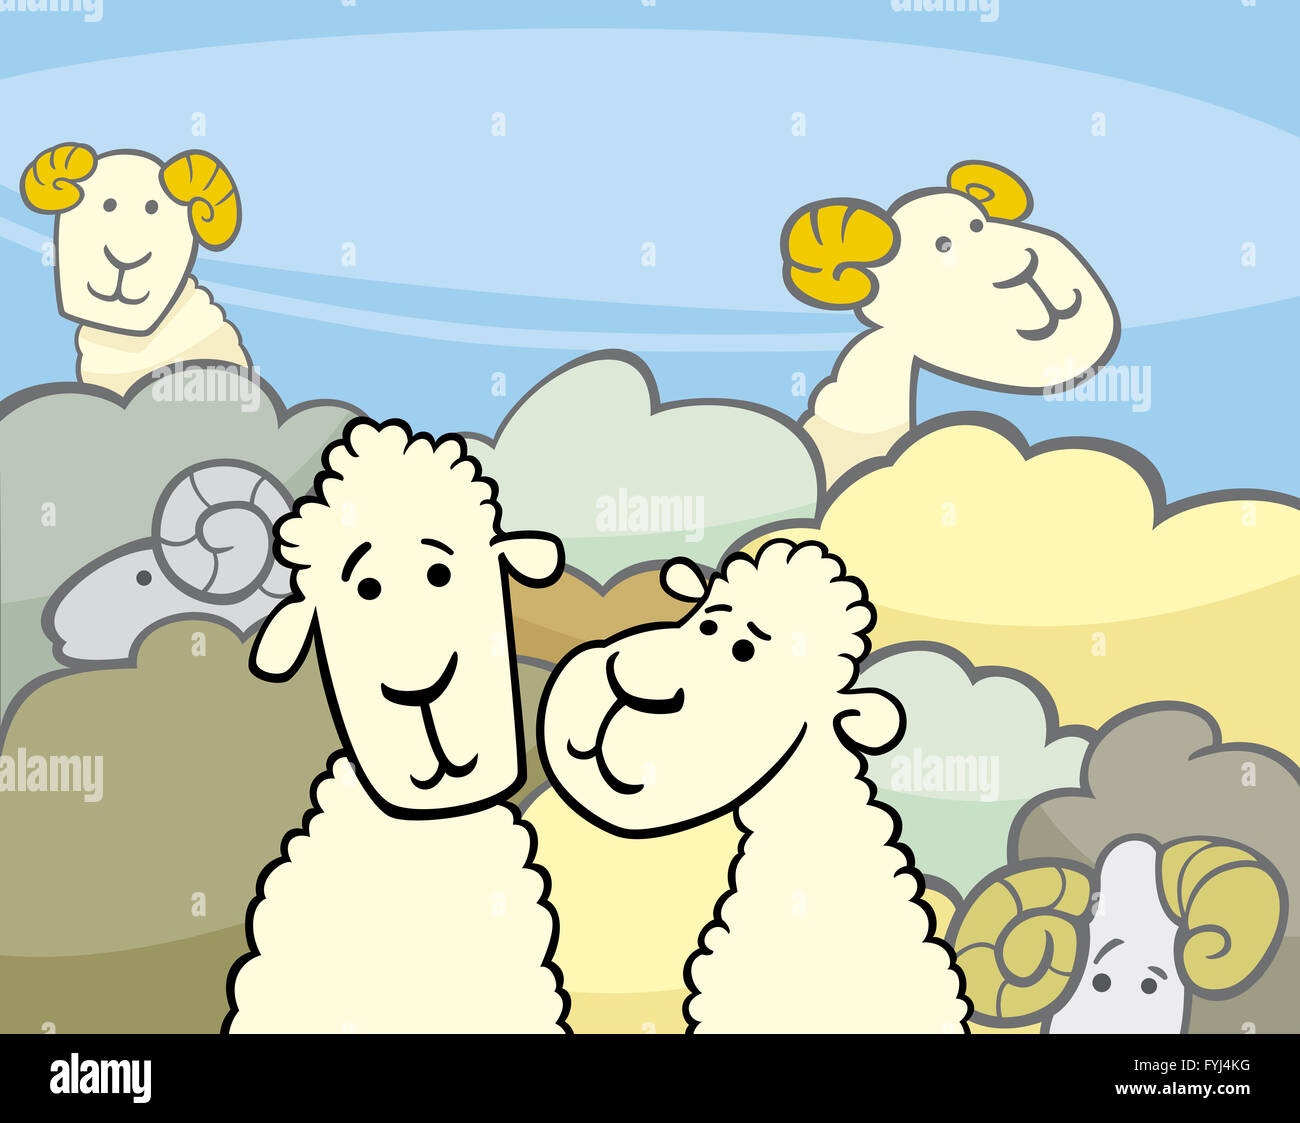 flock of sheep cartoon illustration Stock Photo